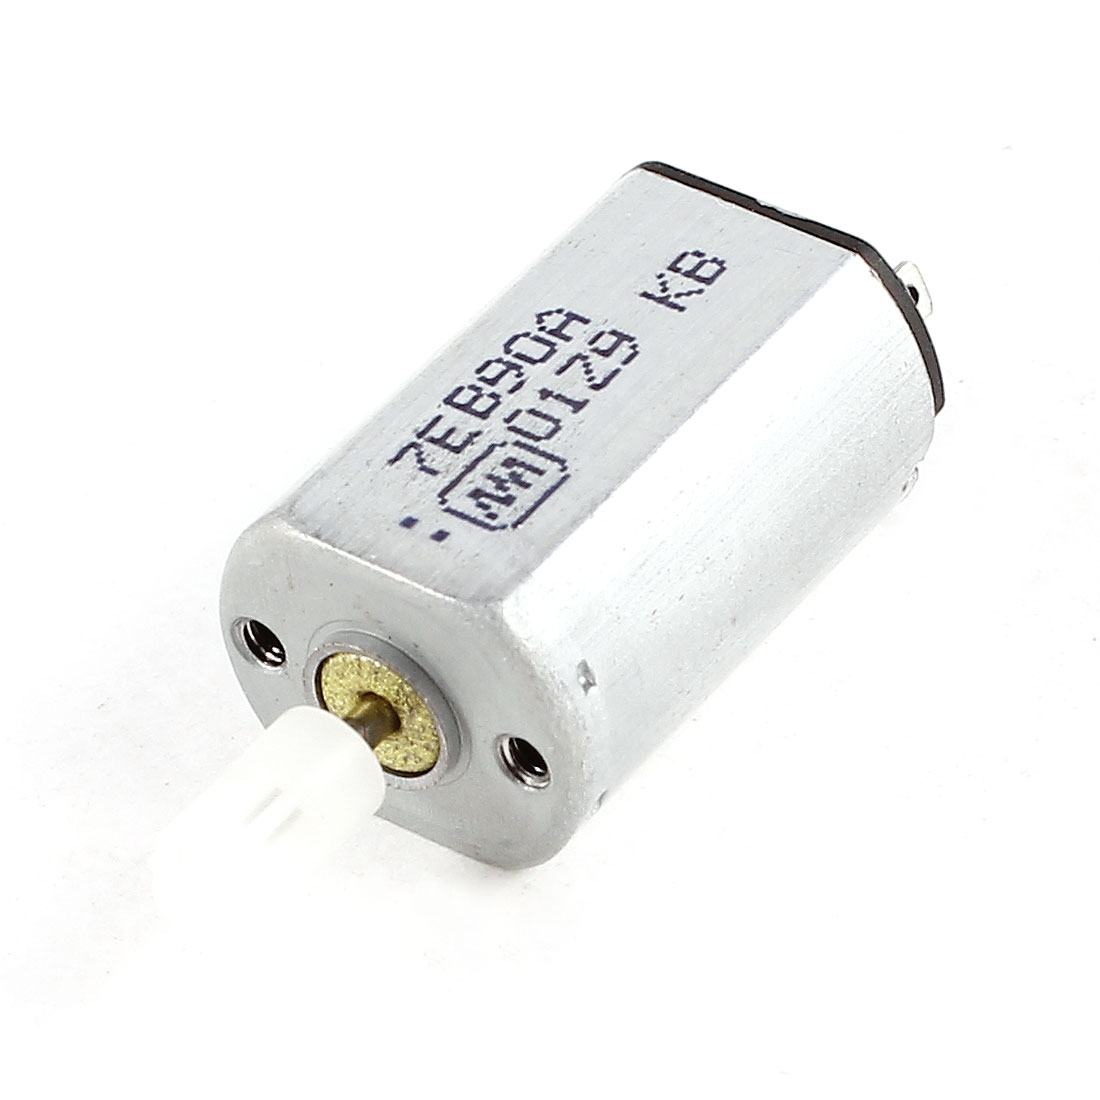 DC 1.5-6V 19000RPM Speed Mini Geared Motor for RC Model Toys DIY